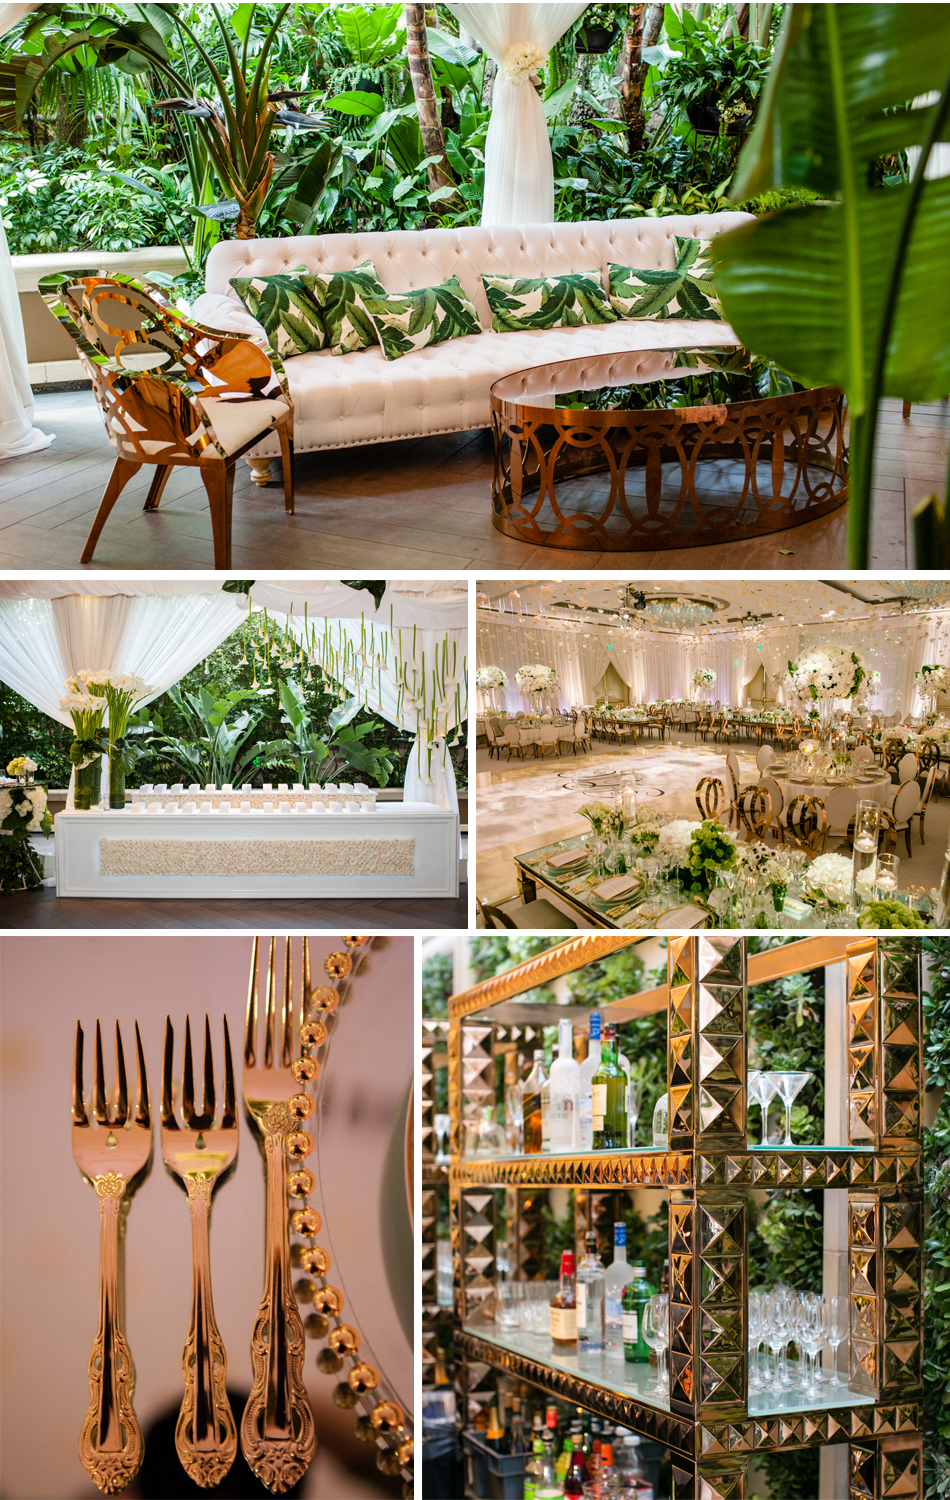 internationaleventcompany.com | International Event Company Los Angeles Wedding Planner and Designer | Weddings at The Four Seasons | Luxury Event Planners in Southern California _ (3).jpg